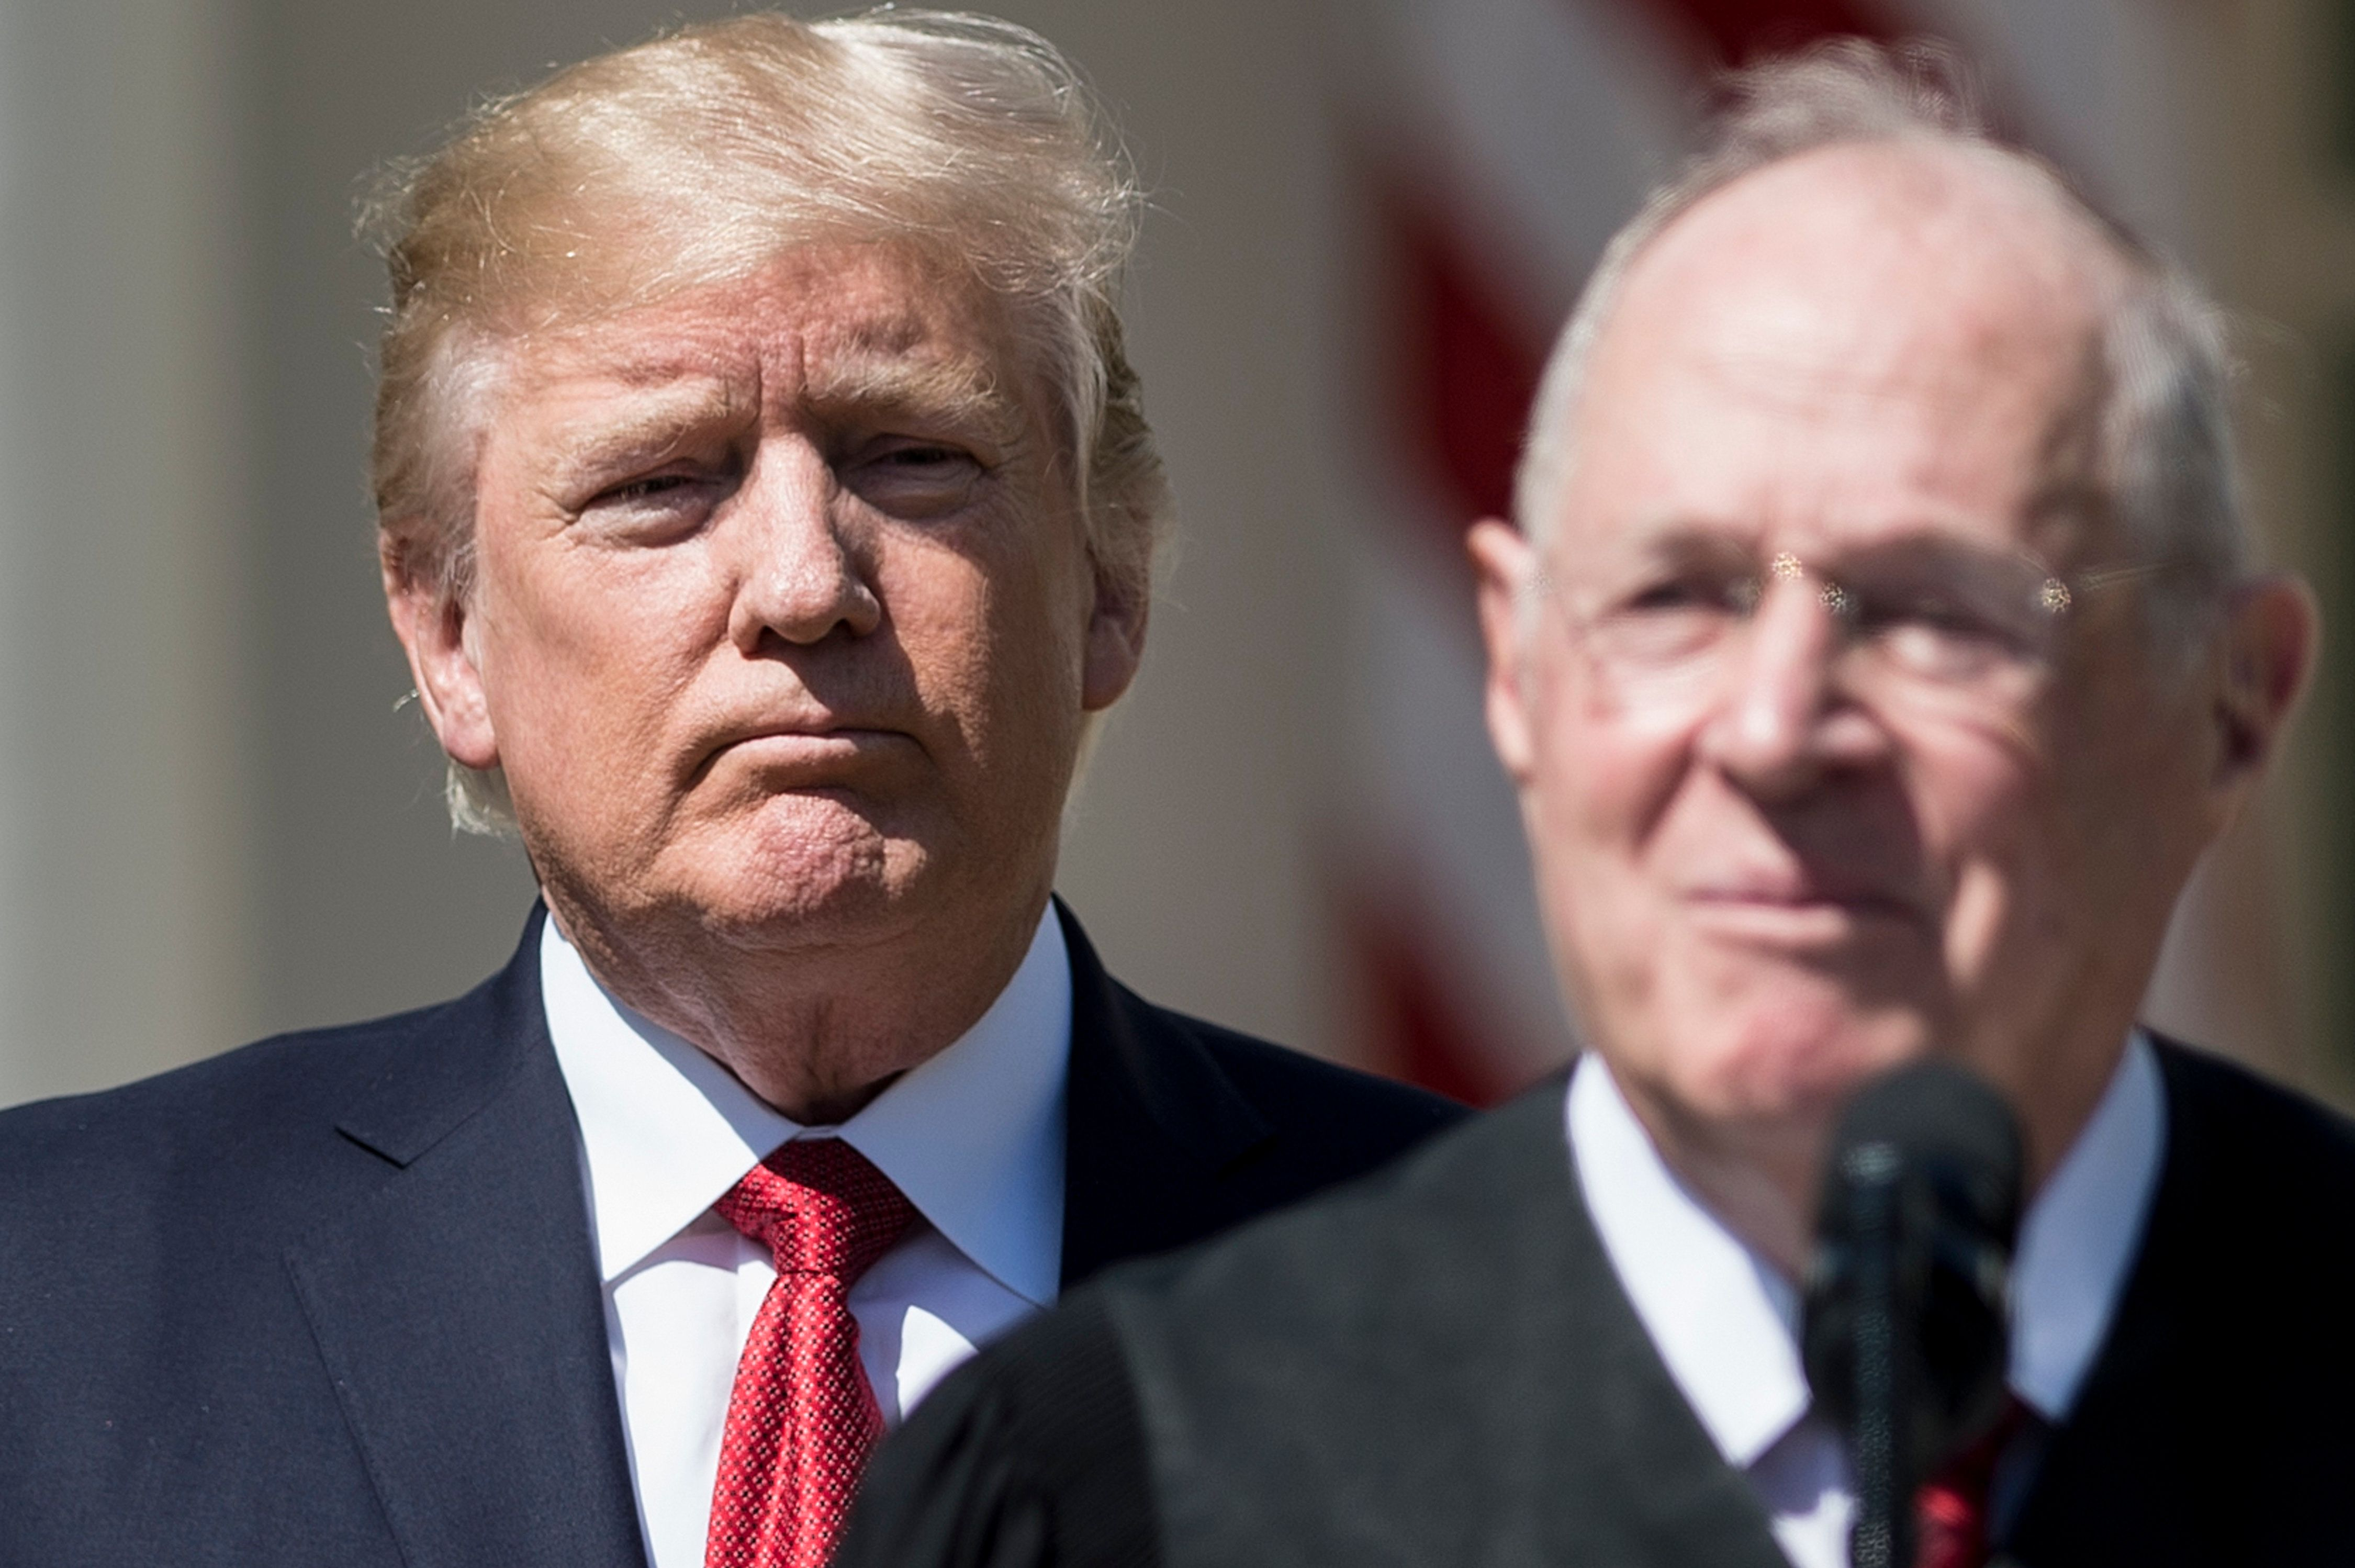 Shortly after Justice Anthony Kennedy announced his retirement, President Donald Trump said he wants to nominate arepla